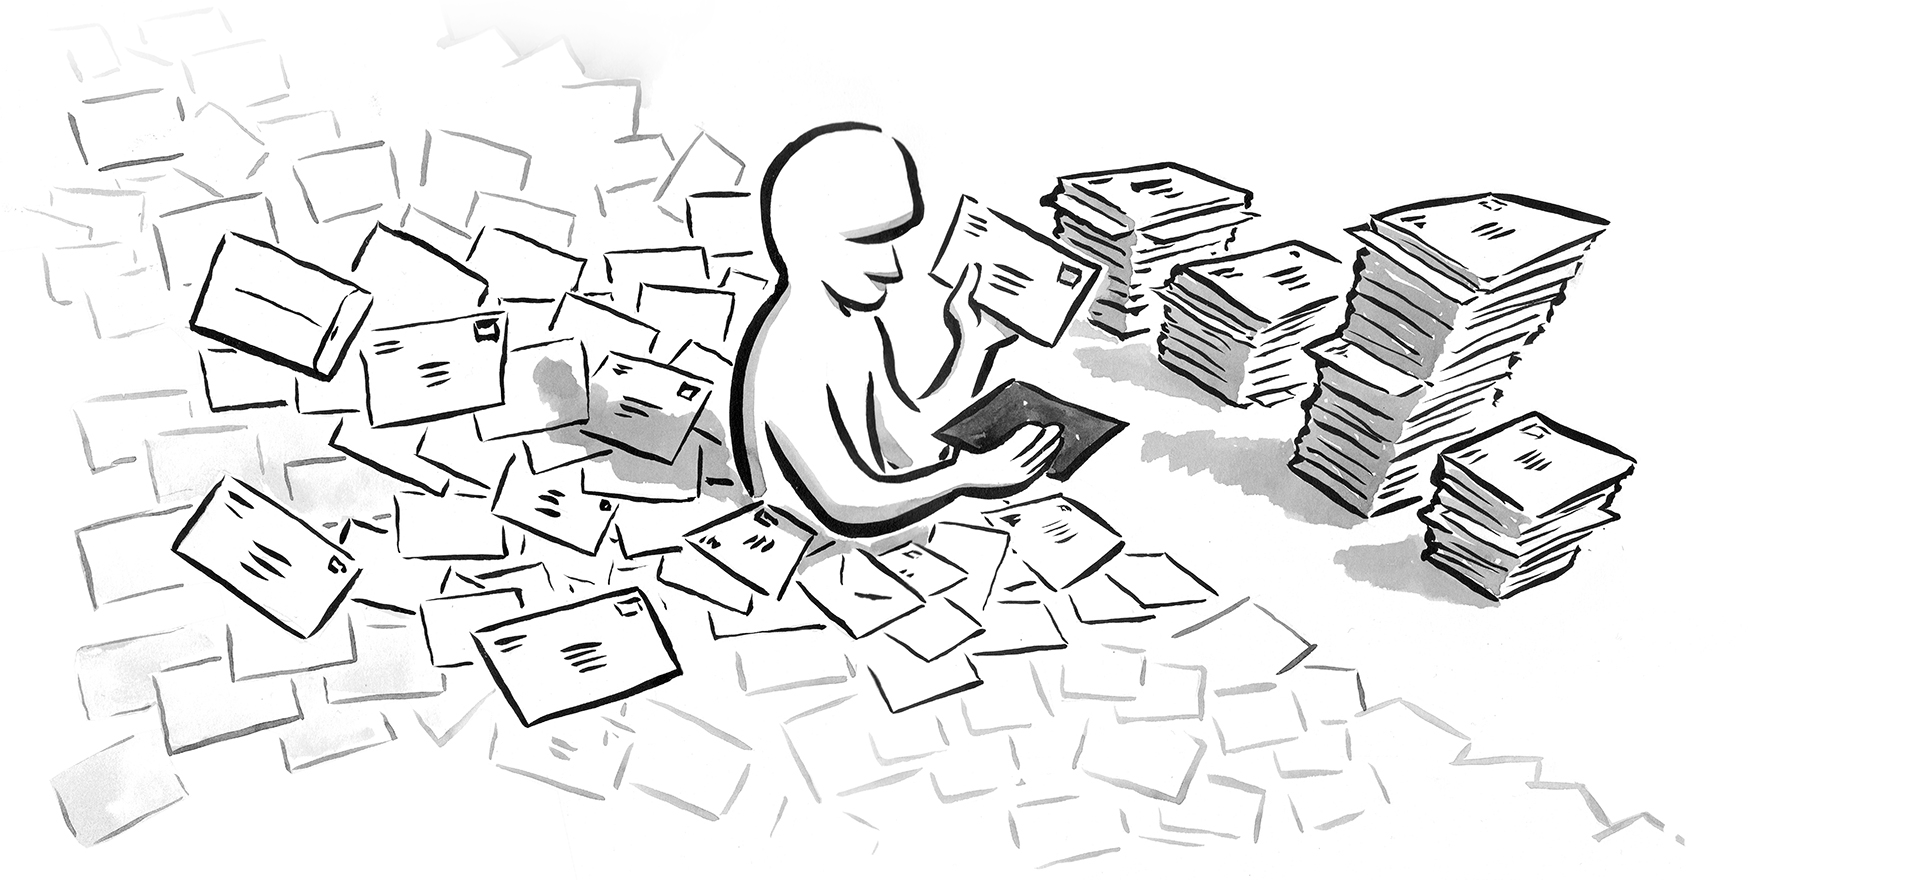 Person immersed in a pile of mail, which they are sorting by hand.